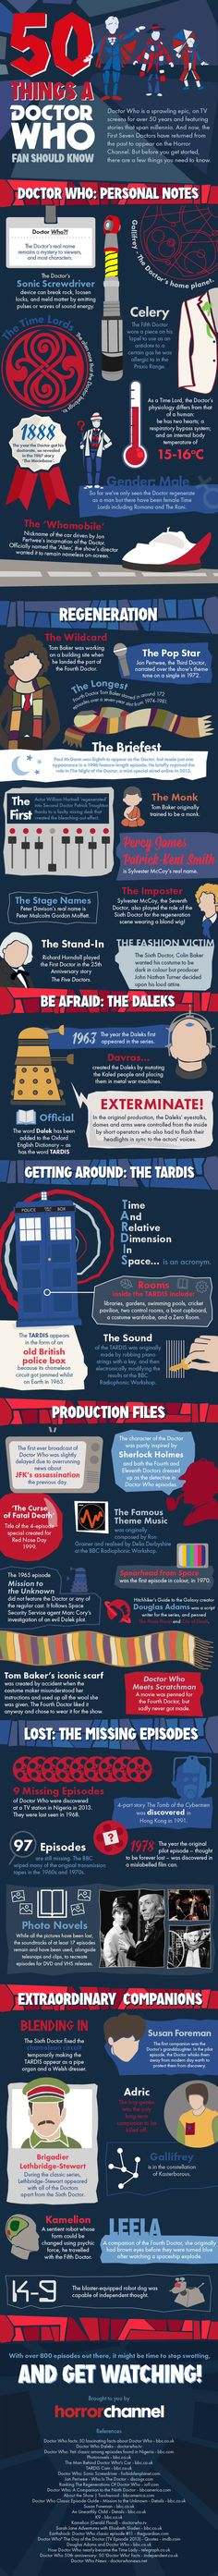 50 facts about Doctor Who every nerd should know!